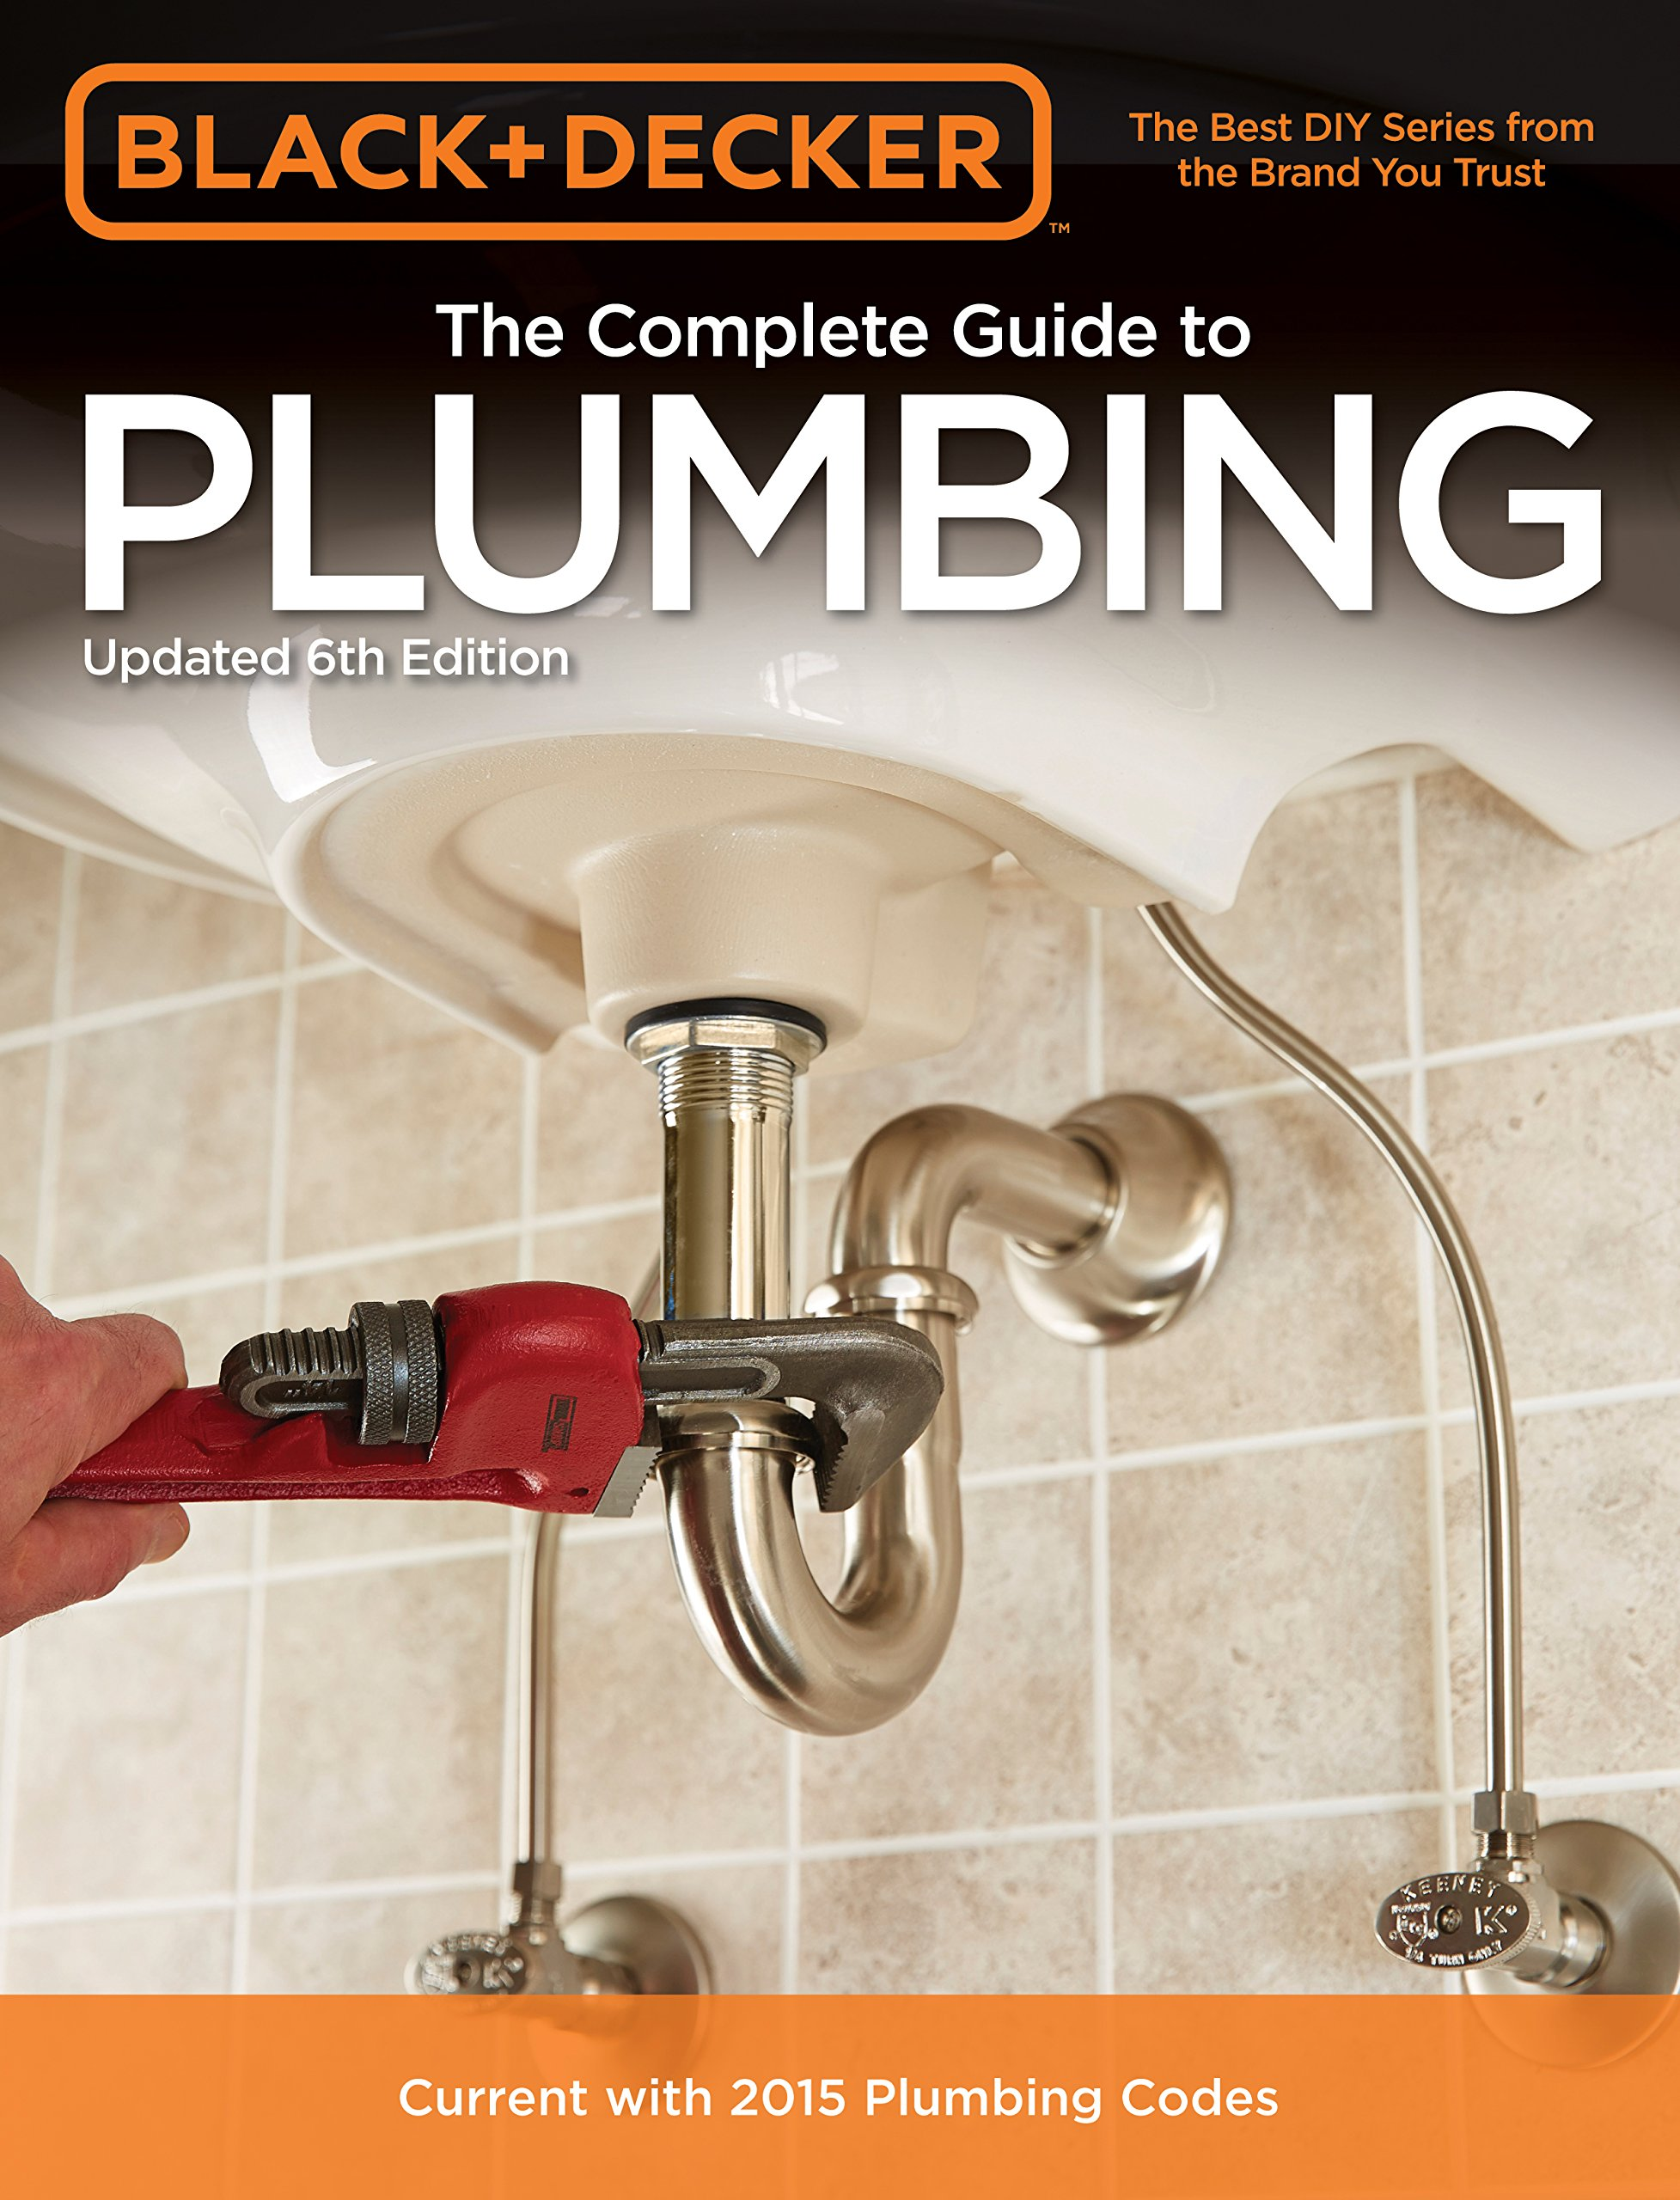 Black decker the complete guide to plumbing 6th edition black black decker the complete guide to plumbing 6th edition black decker complete guide editors of cool springs press 9781591866367 amazon books solutioingenieria Gallery